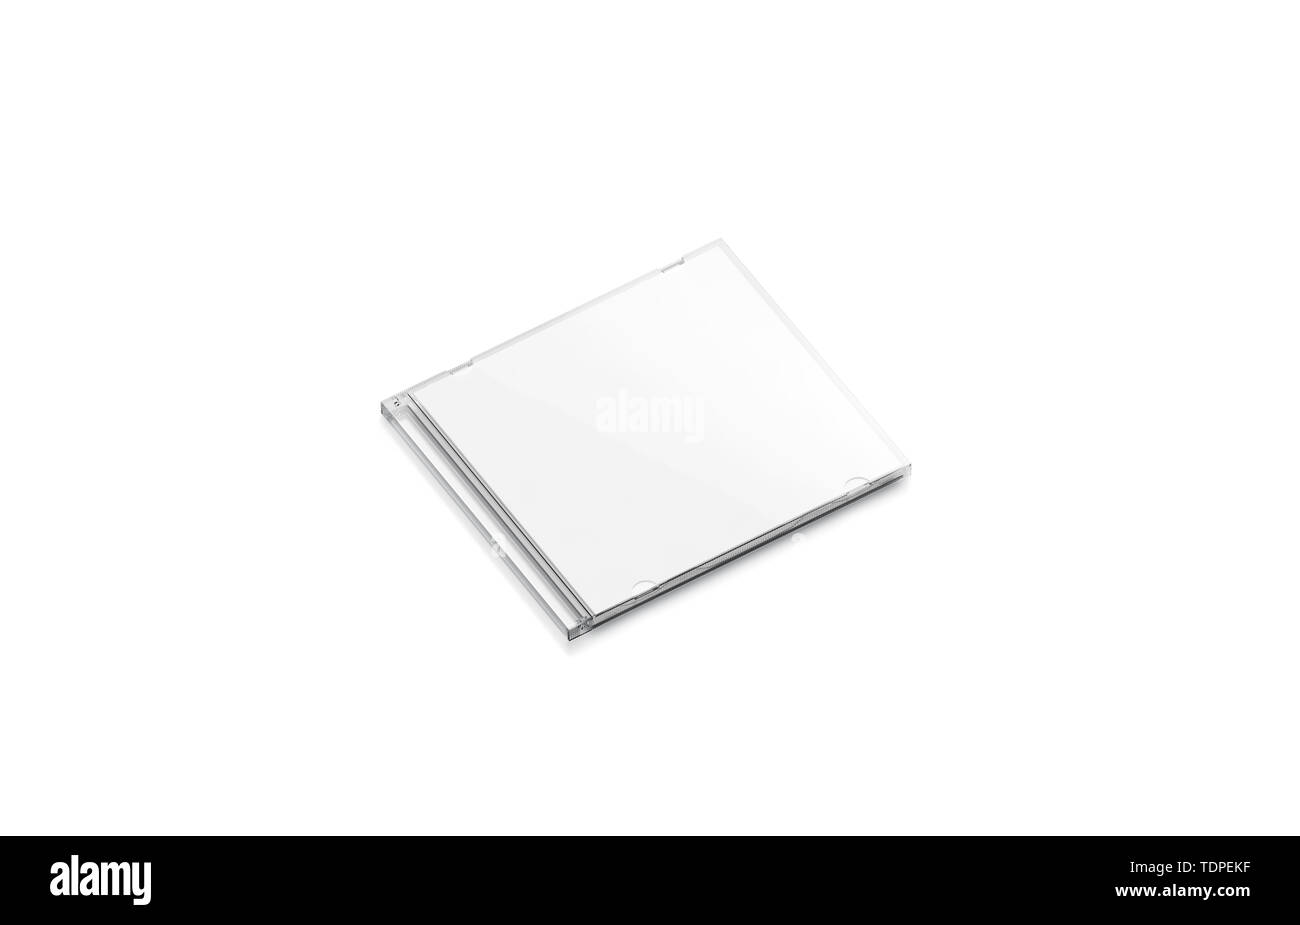 Blank white cd case mock up closed, side view, isolated, 3d rendering. Empty compact disk with movie mockup. Clear dvd case for digital multimedia or software template. - Stock Image